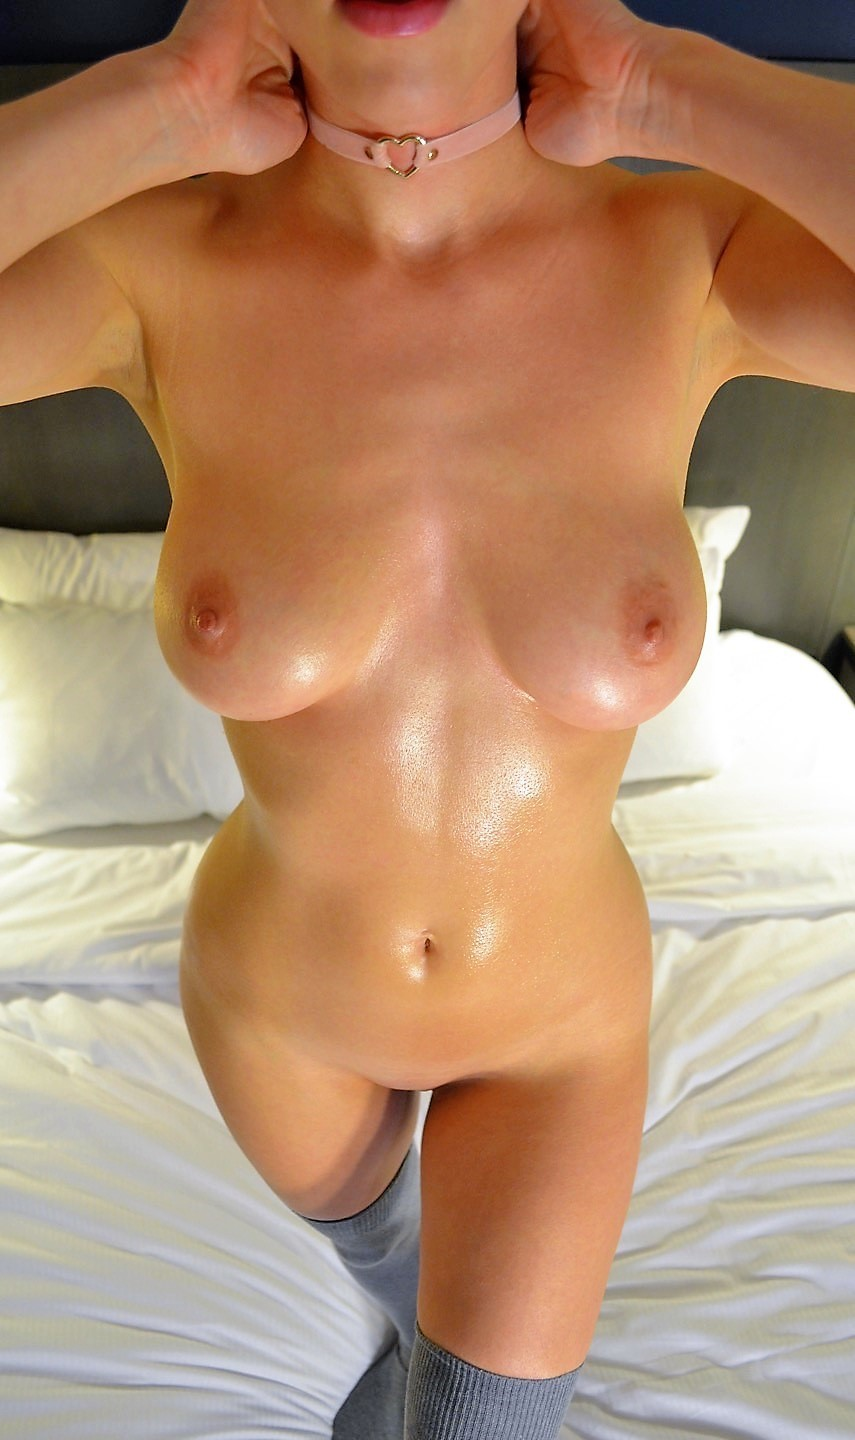 daddy first time fuck virgin daughter she so free porn tube